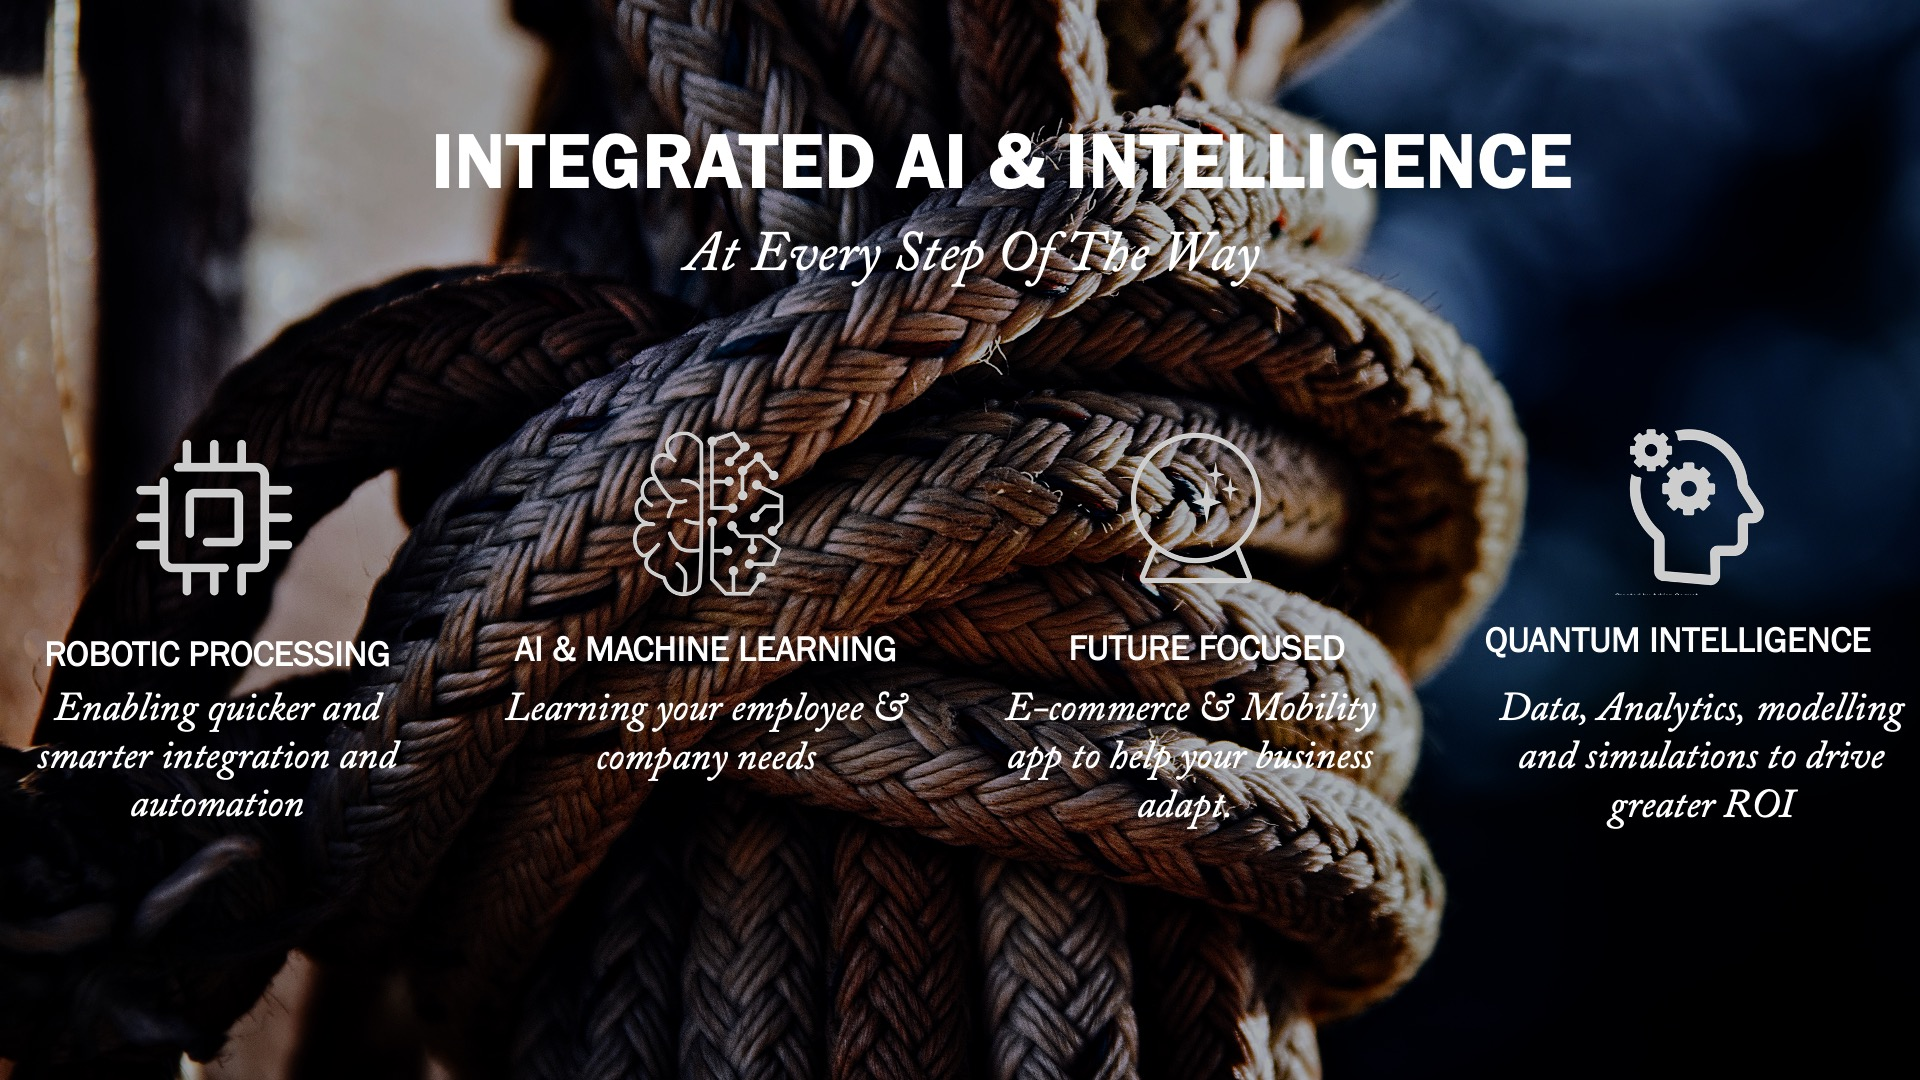 Integrated AI and Intelligence